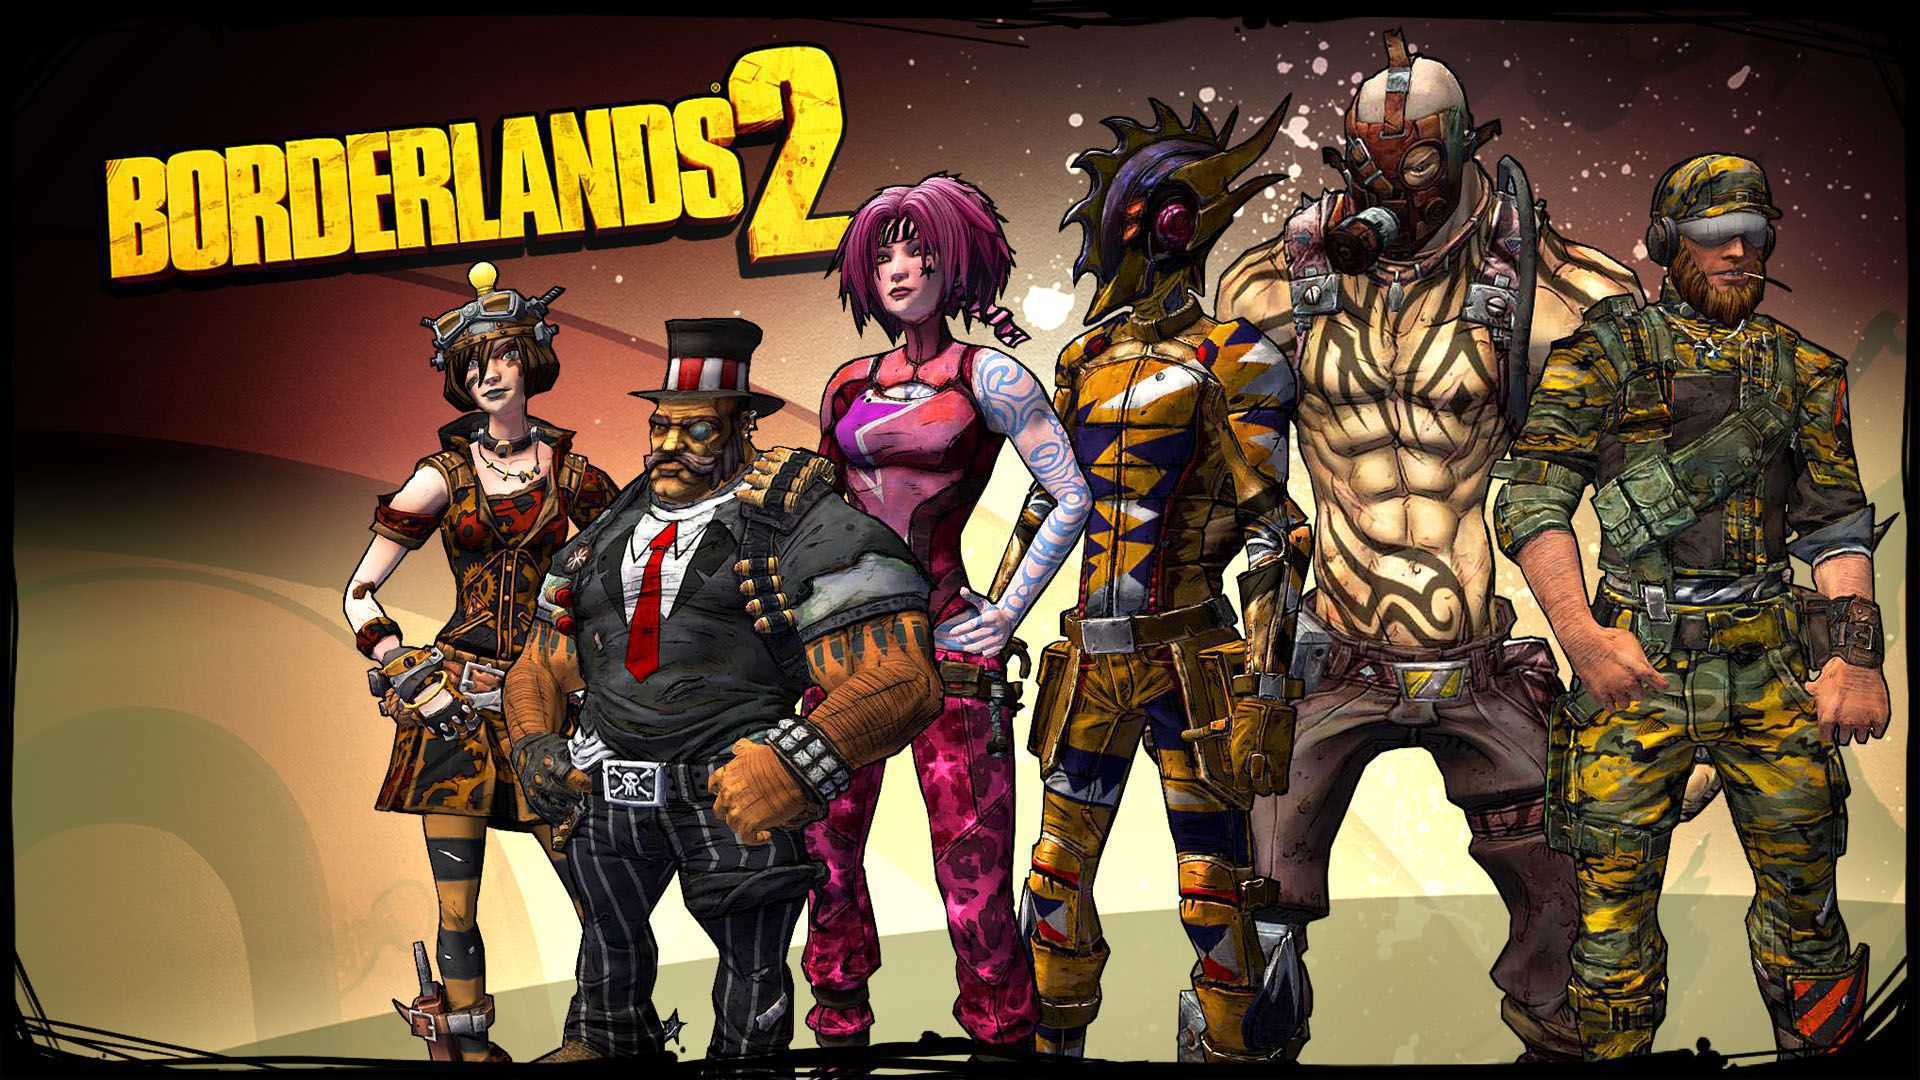 Borderlands 2 Wallpapers HD